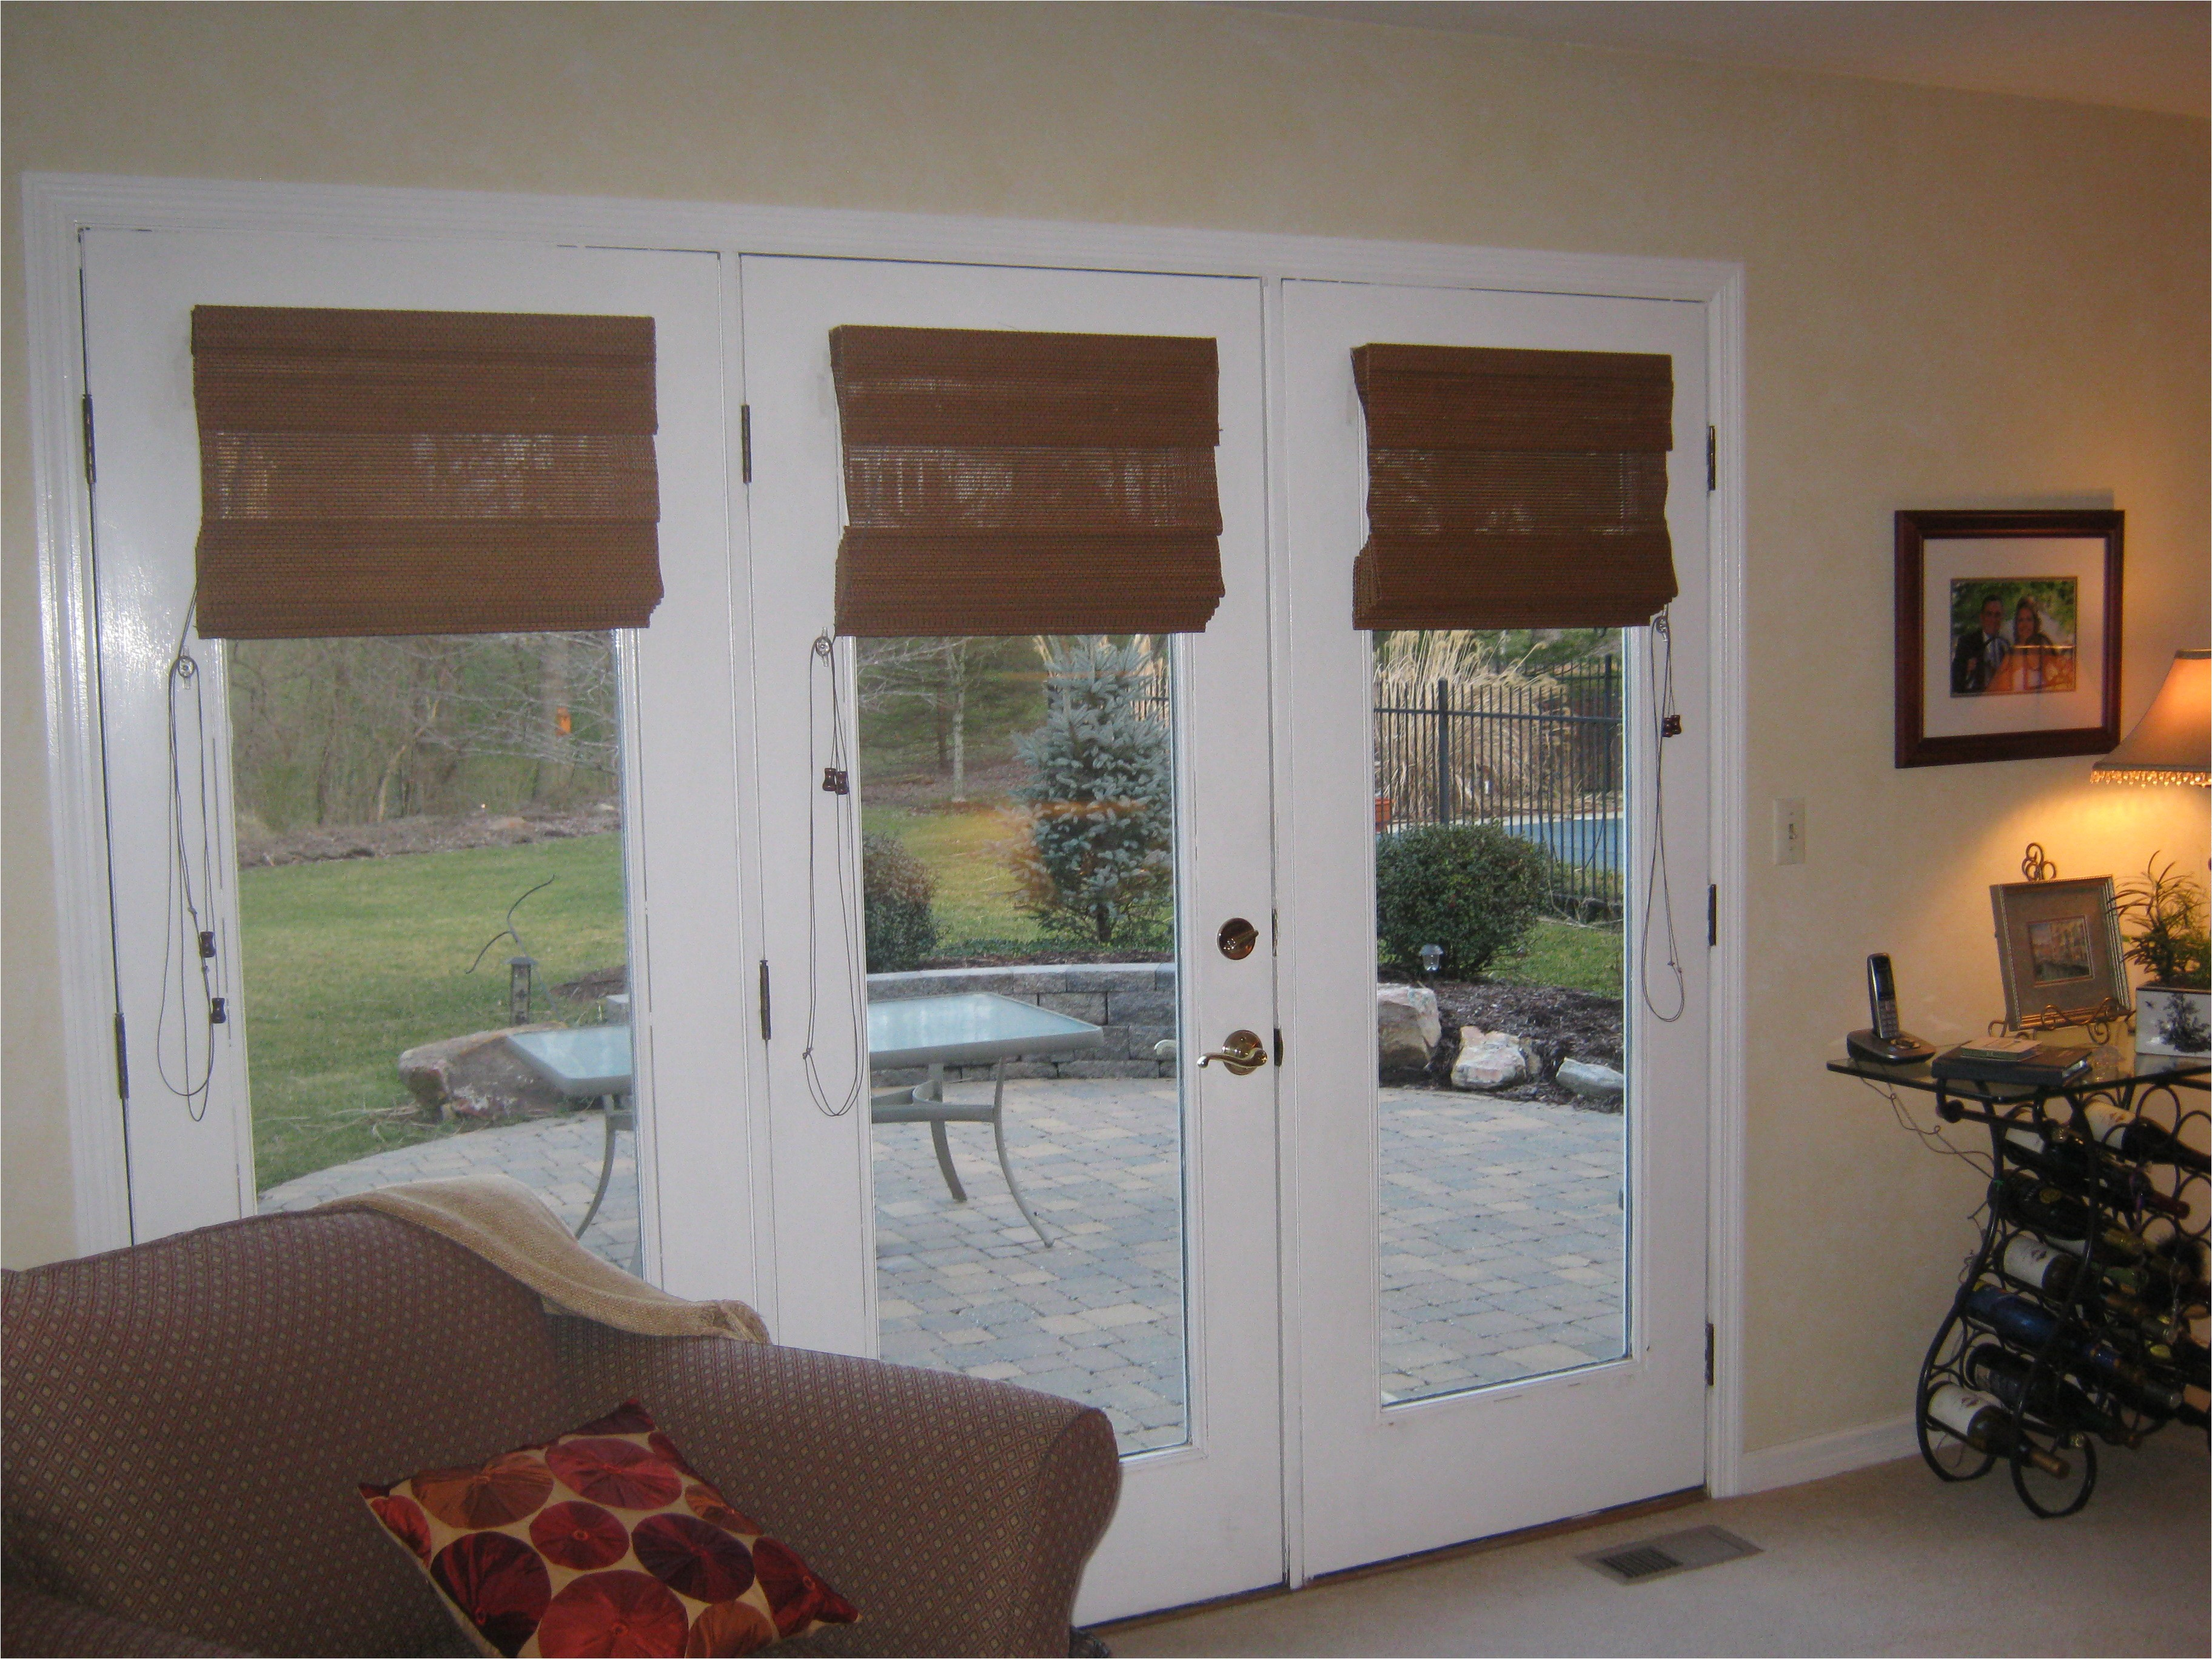 Does Big Lots Sell Mini Blinds Ikea Hoppvals Review Tupplur Blinds Wont Roll Up Cordless